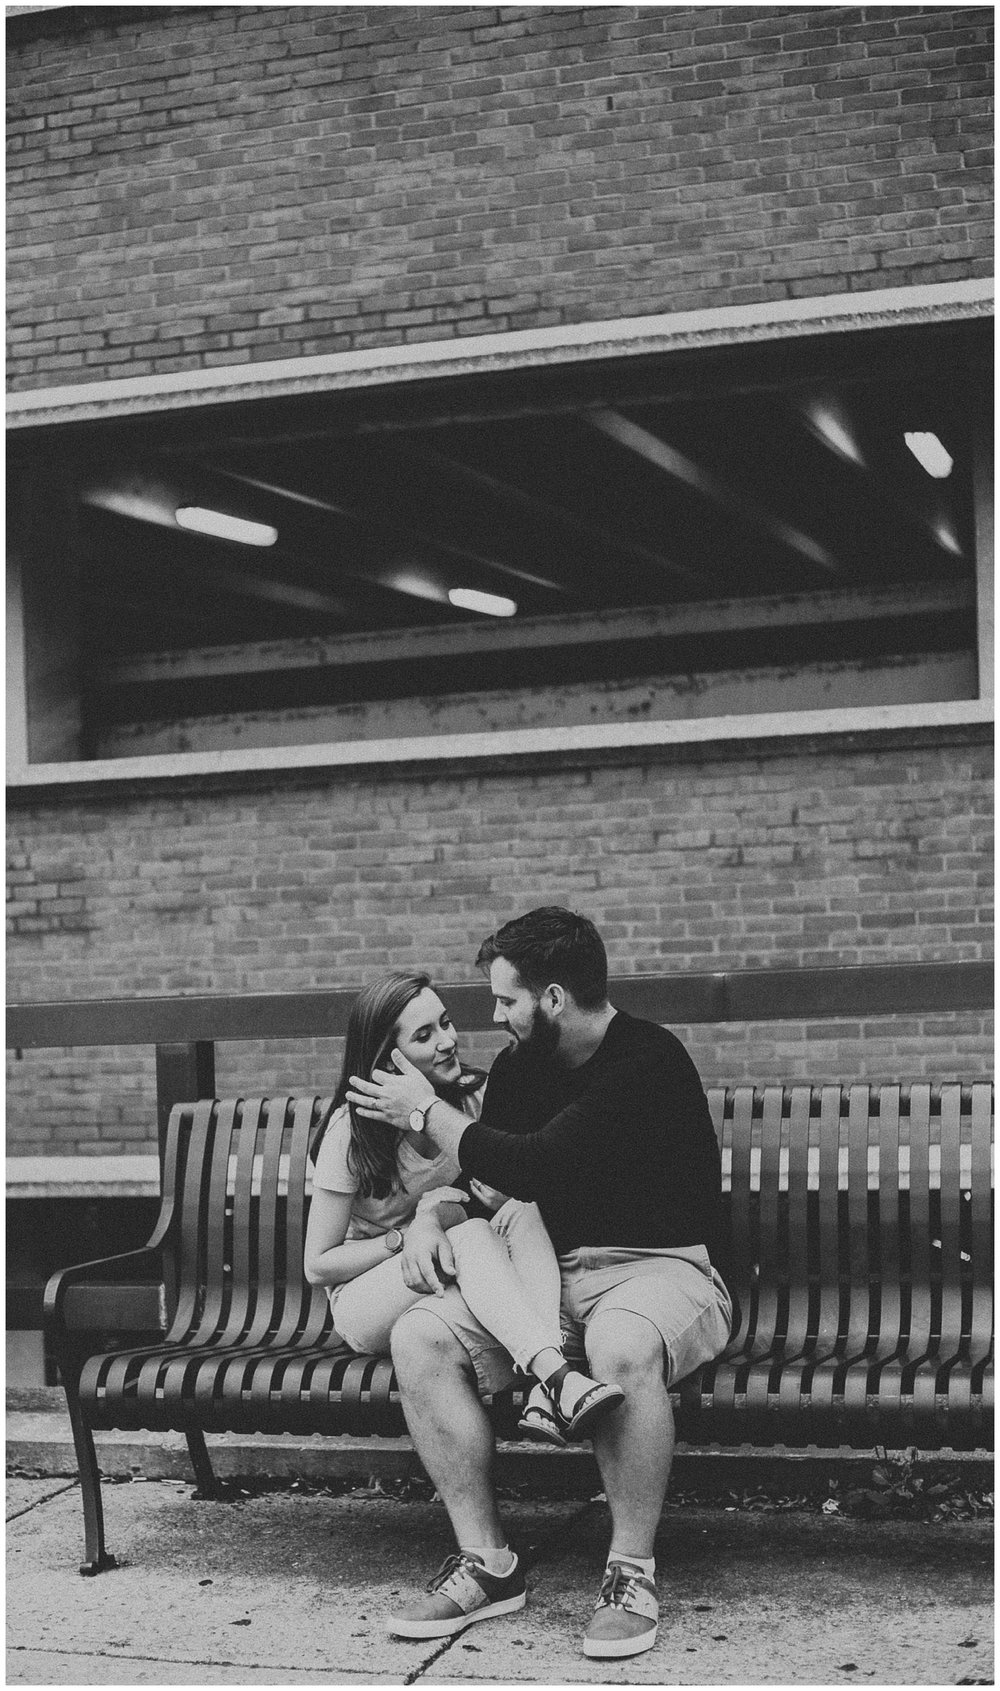 Summer sunrise Parking Garage Rooftop Engagement Session in Lancaster Pennsylvania_0169.jpg